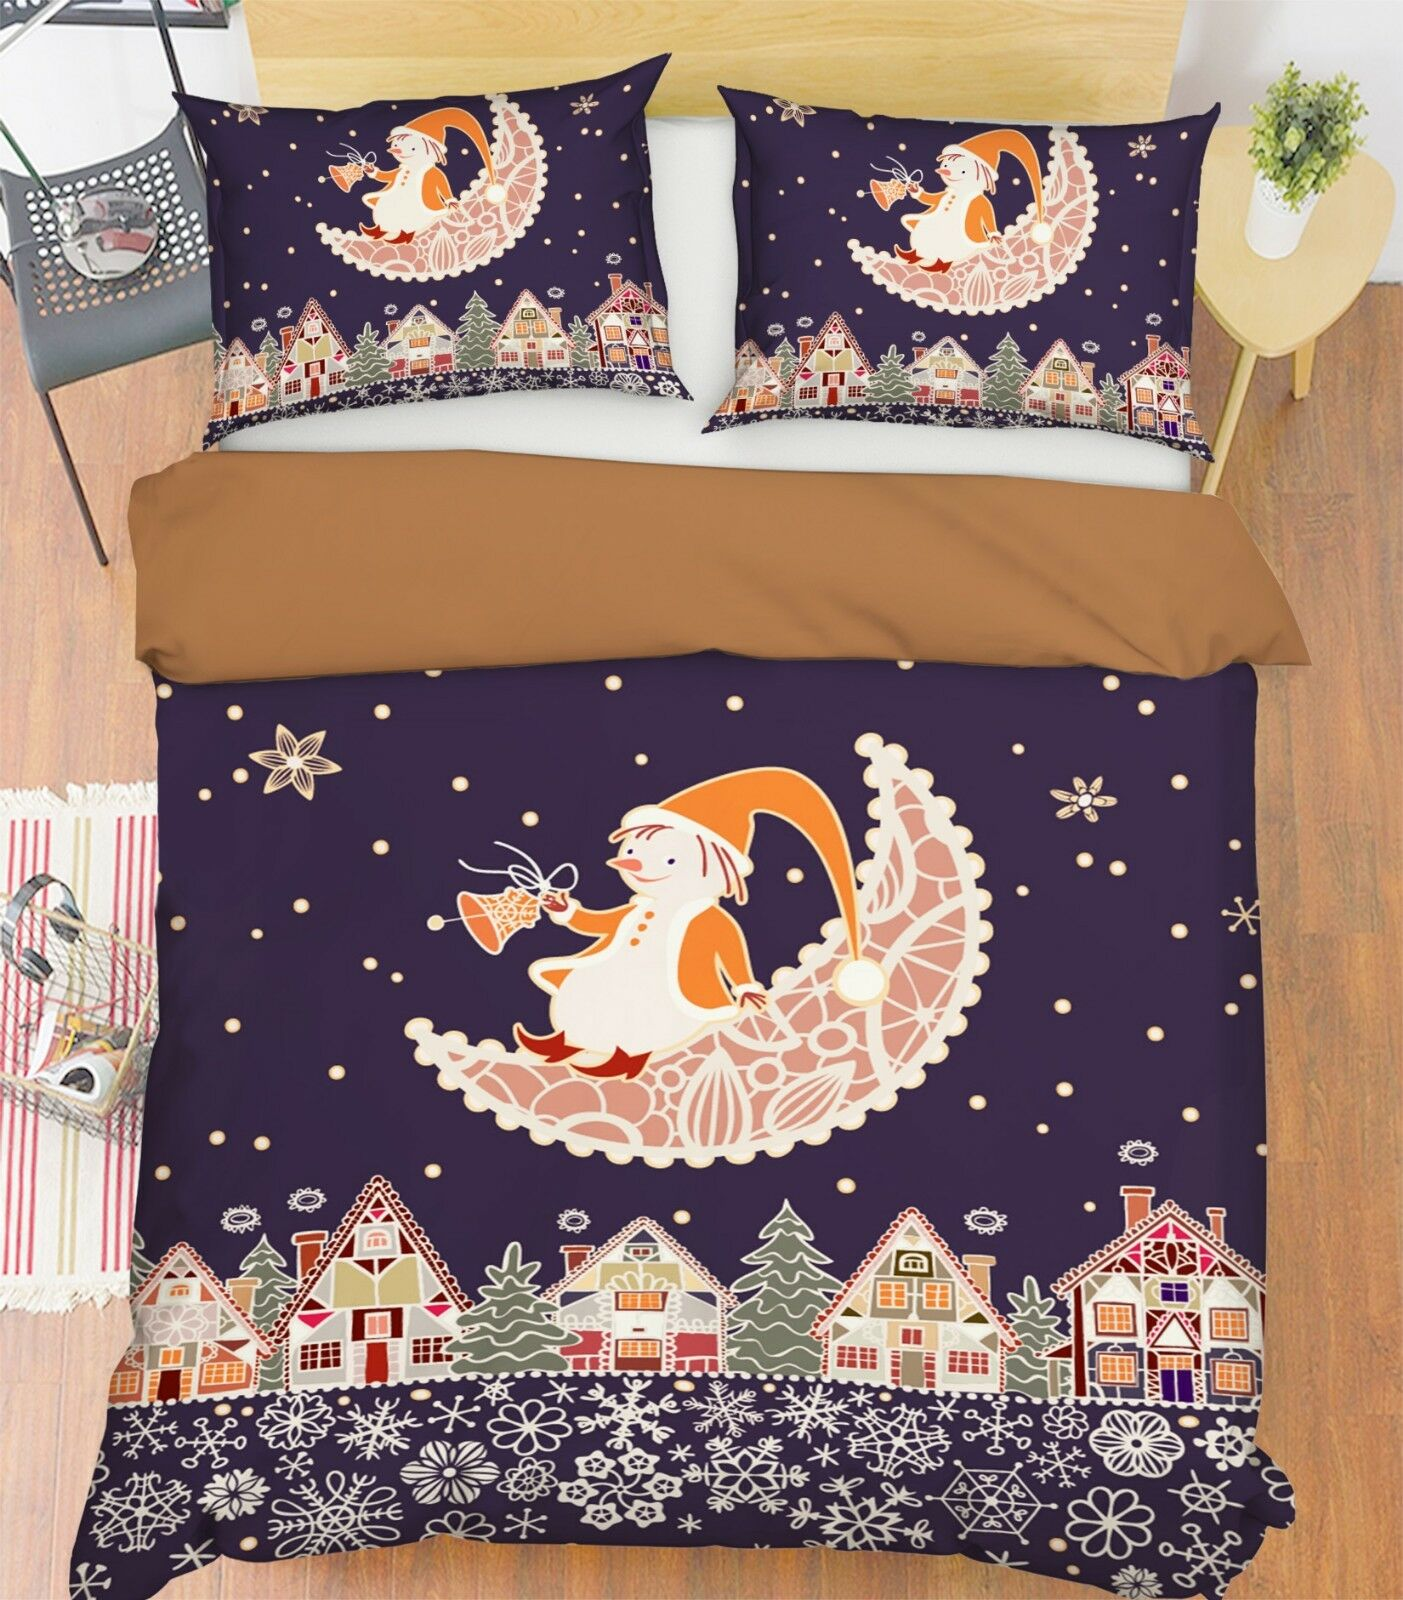 3D Christmas Xmas Moon 501 Bed Pillowcases Quilt Duvet Cover Set Single KingUK